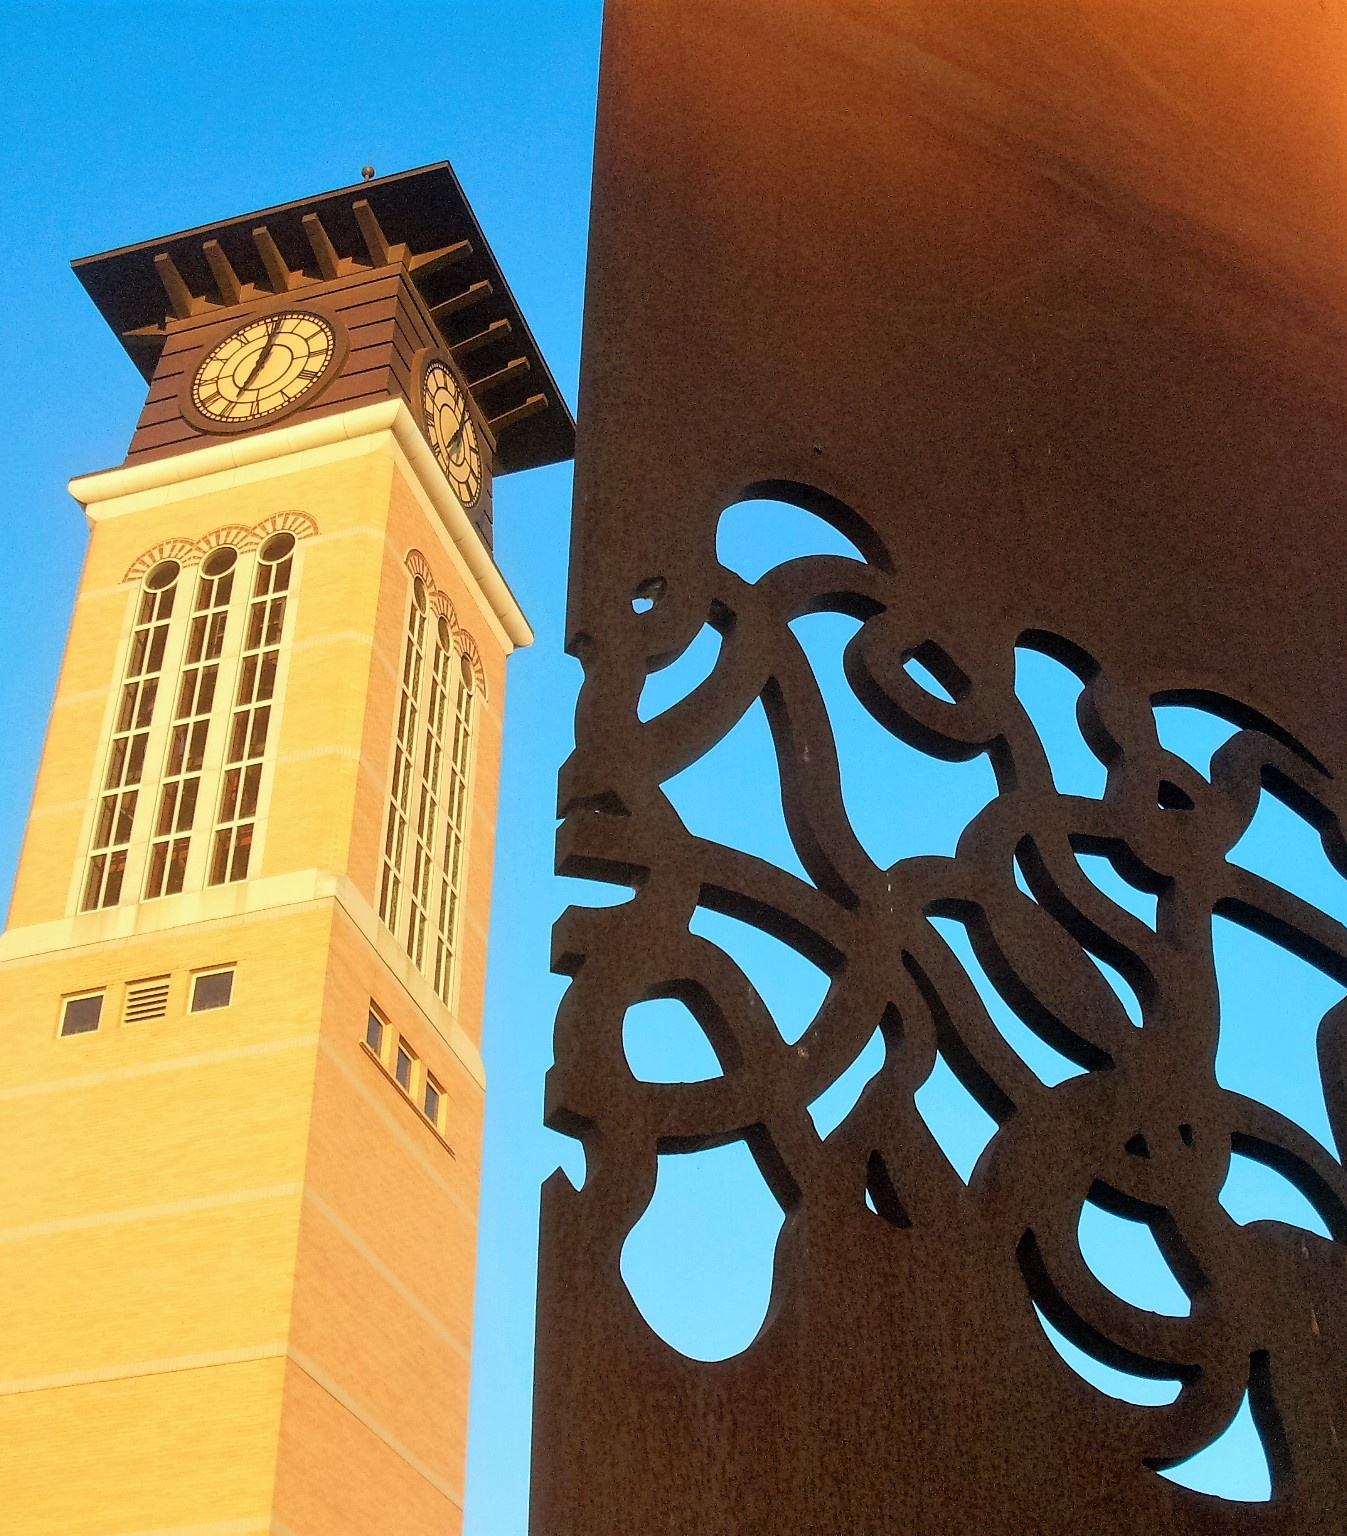 Campus Clock Tower by Zebb